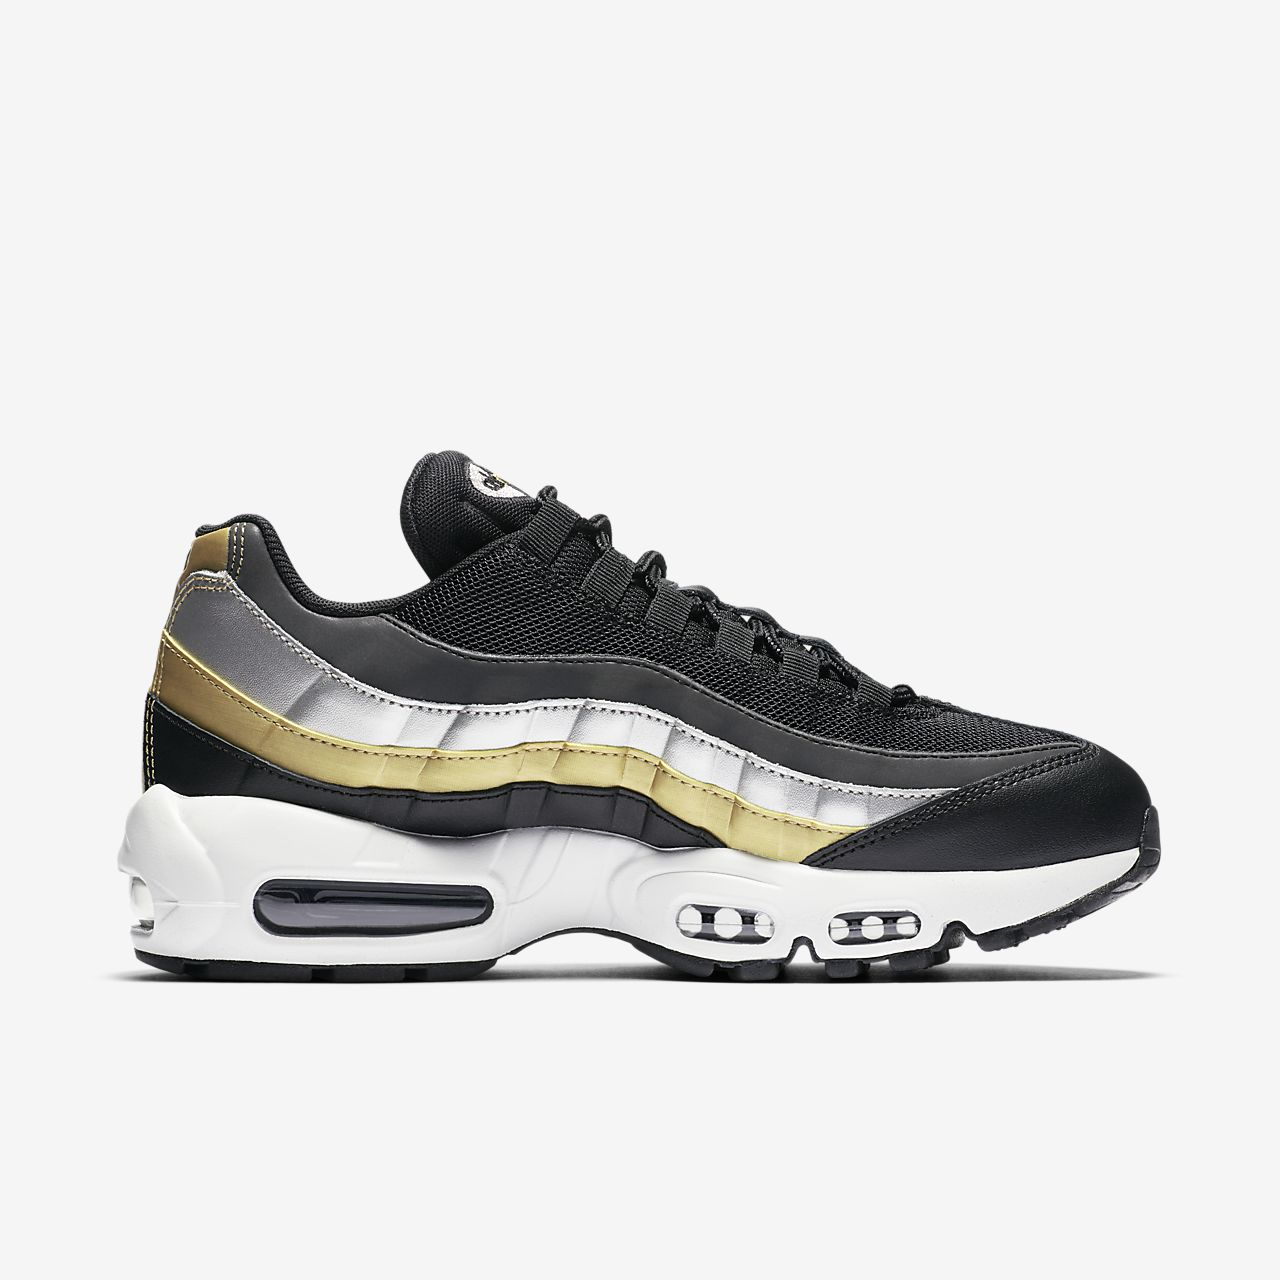 save off 7a325 29755 Nike Air Max 95 Lux Metallic Women's Shoe